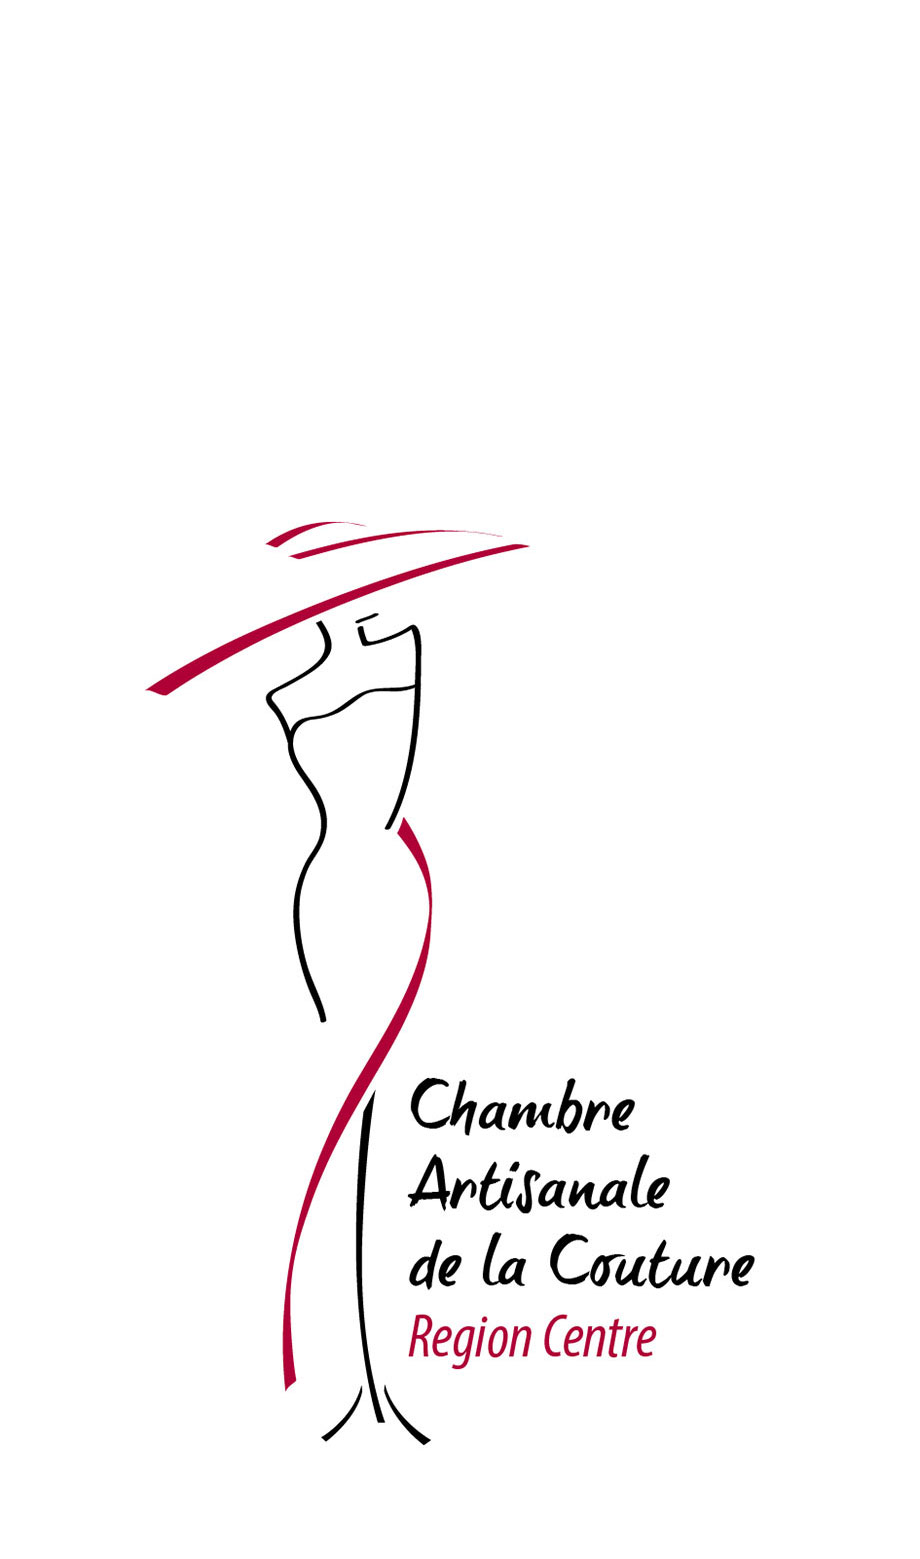 image logo couture